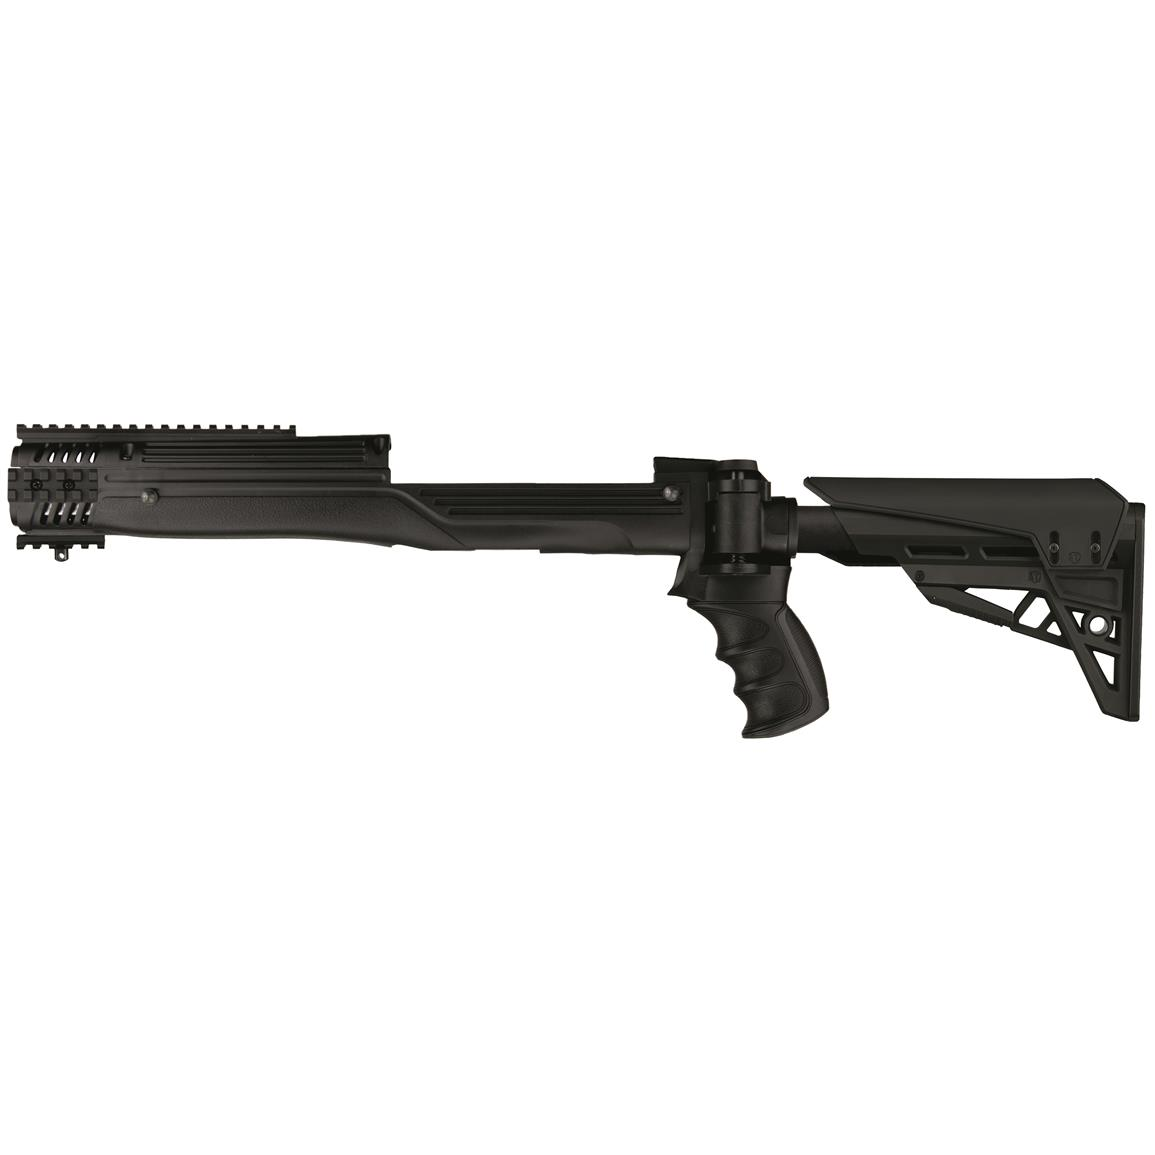 ATI TactLite StrikeForce R30 Folding Rifle Stock Fits All Ruger Mini-Thirty, Black